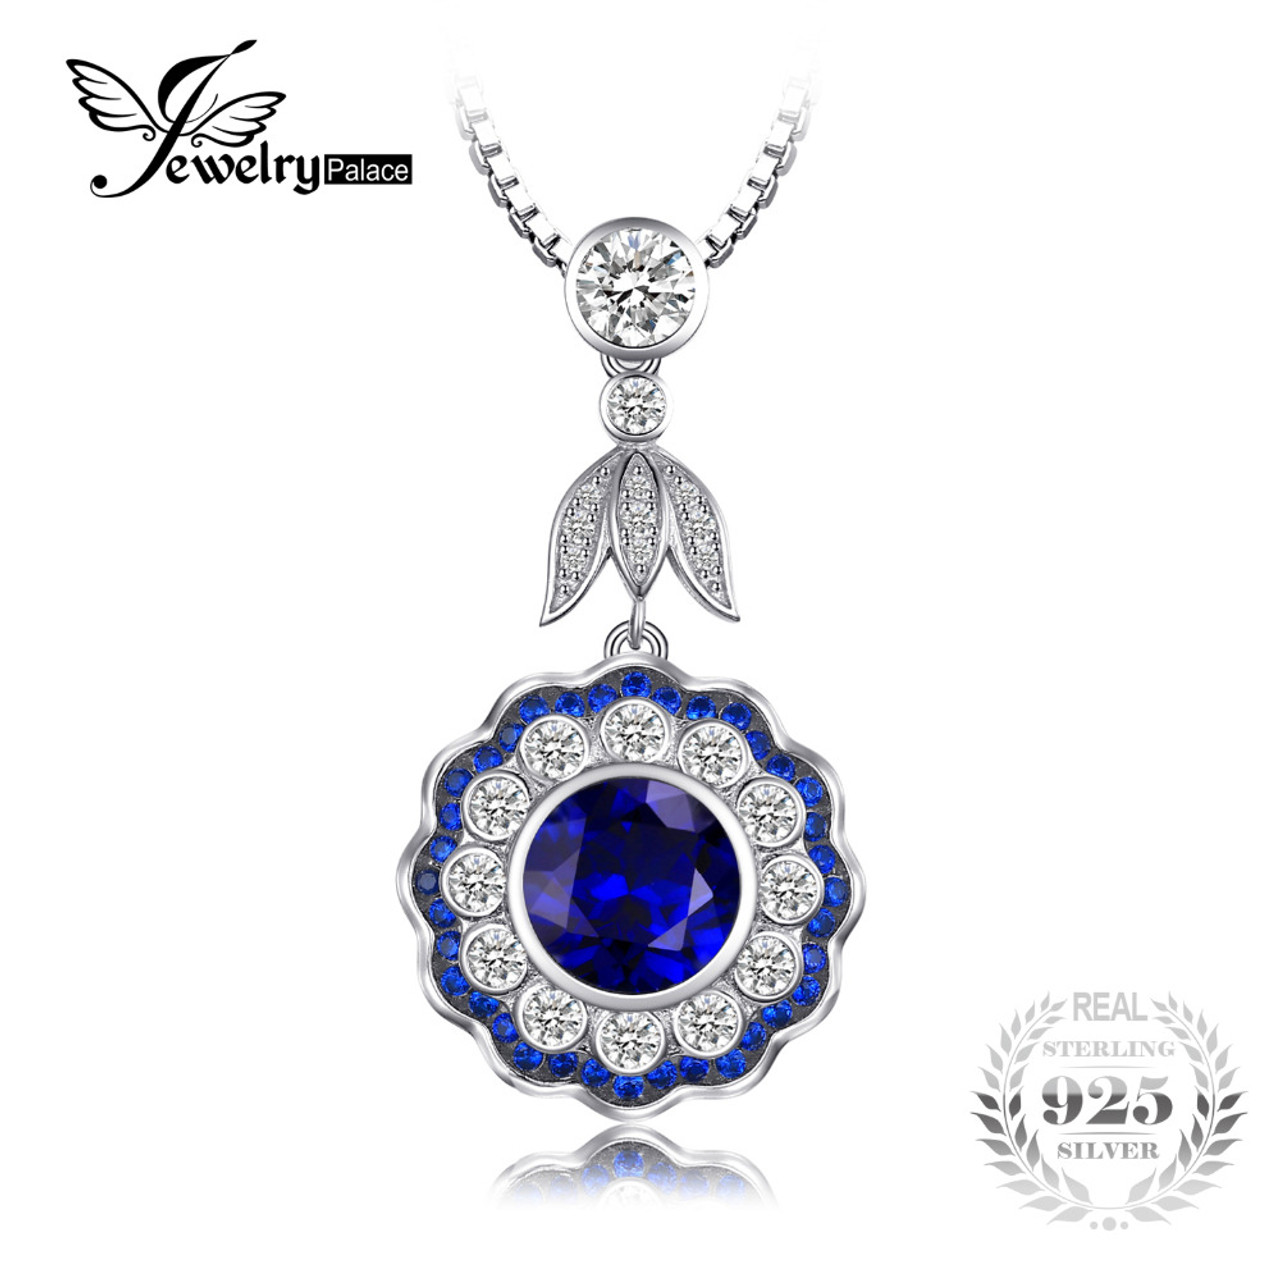 Jewelrypalace luxury 6ct created sapphire flower pendants necklaces jewelrypalace luxury 6ct created sapphire flower pendants necklaces for women genuine 925 sterling silver 45cm box aloadofball Choice Image